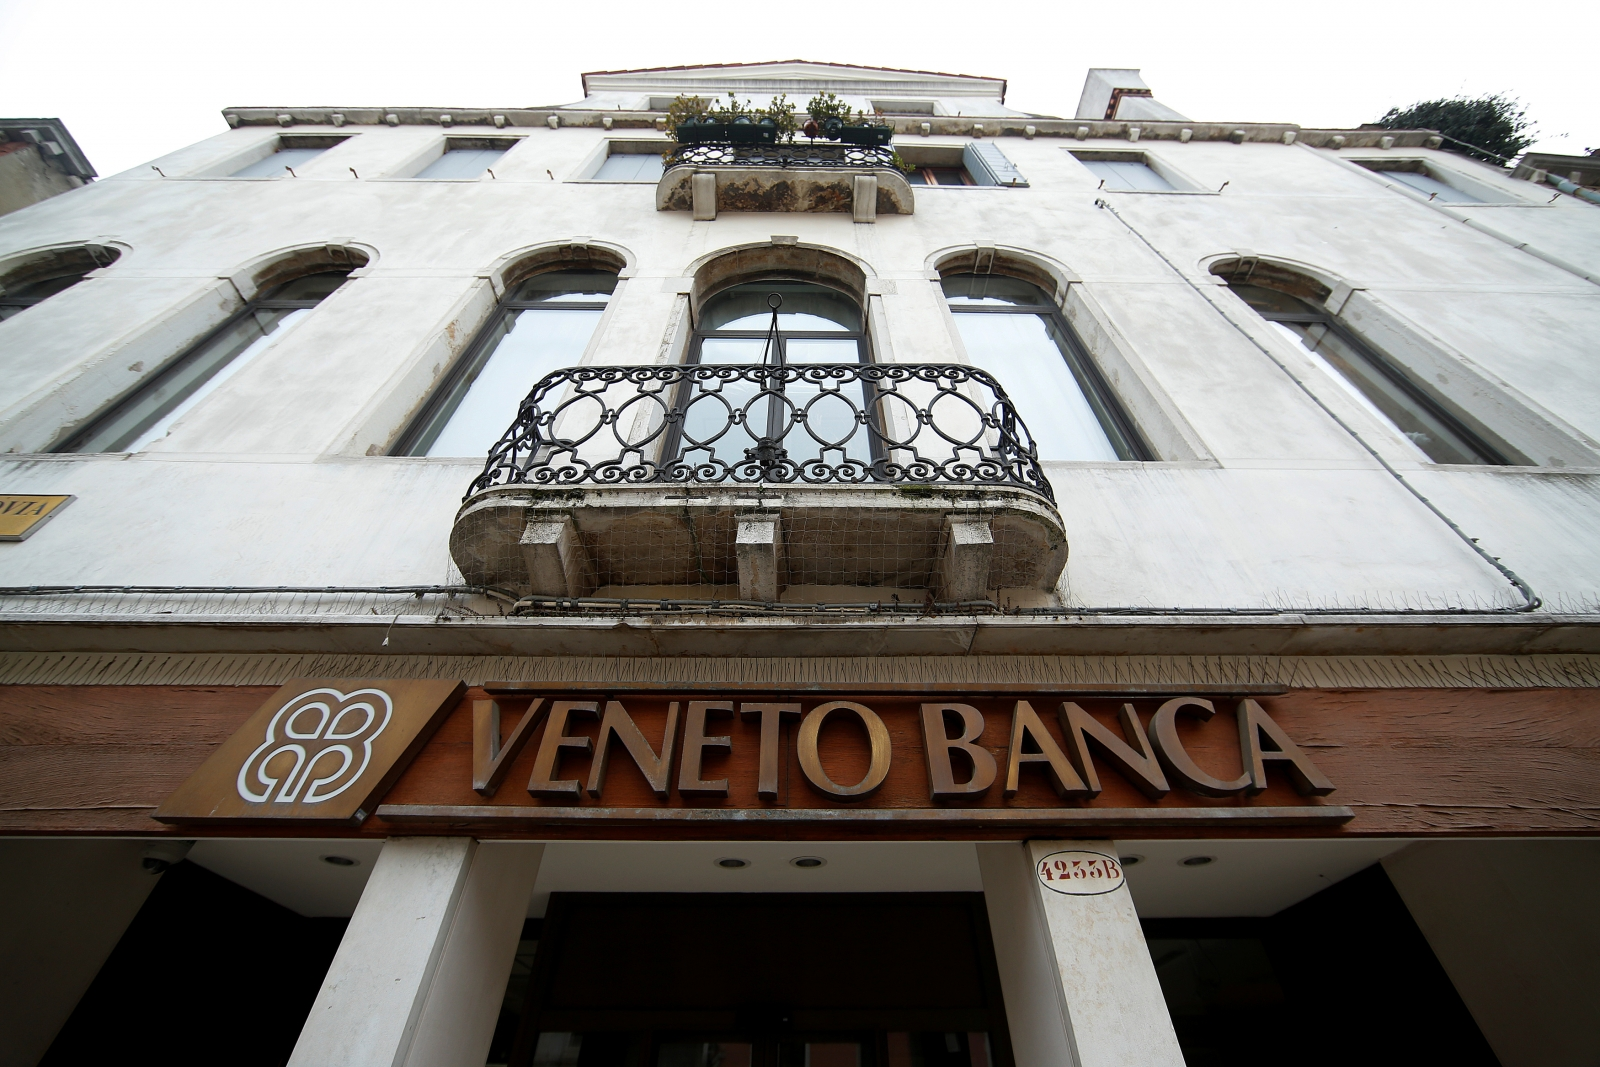 Italian banks consider joint rescue of Veneto banks